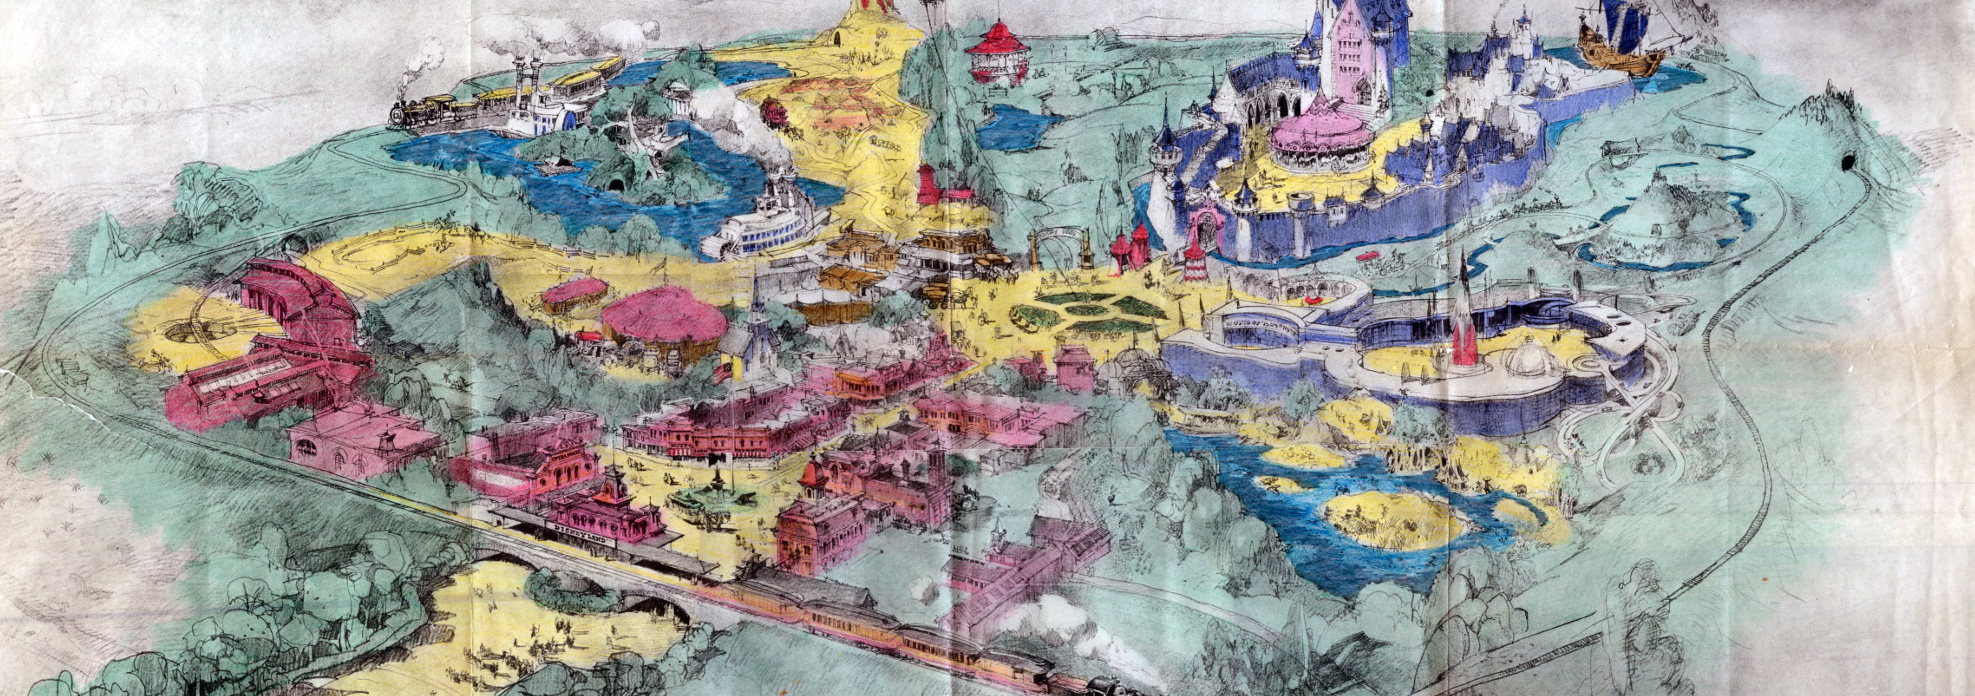 Disneyland's original prospectus revealed!